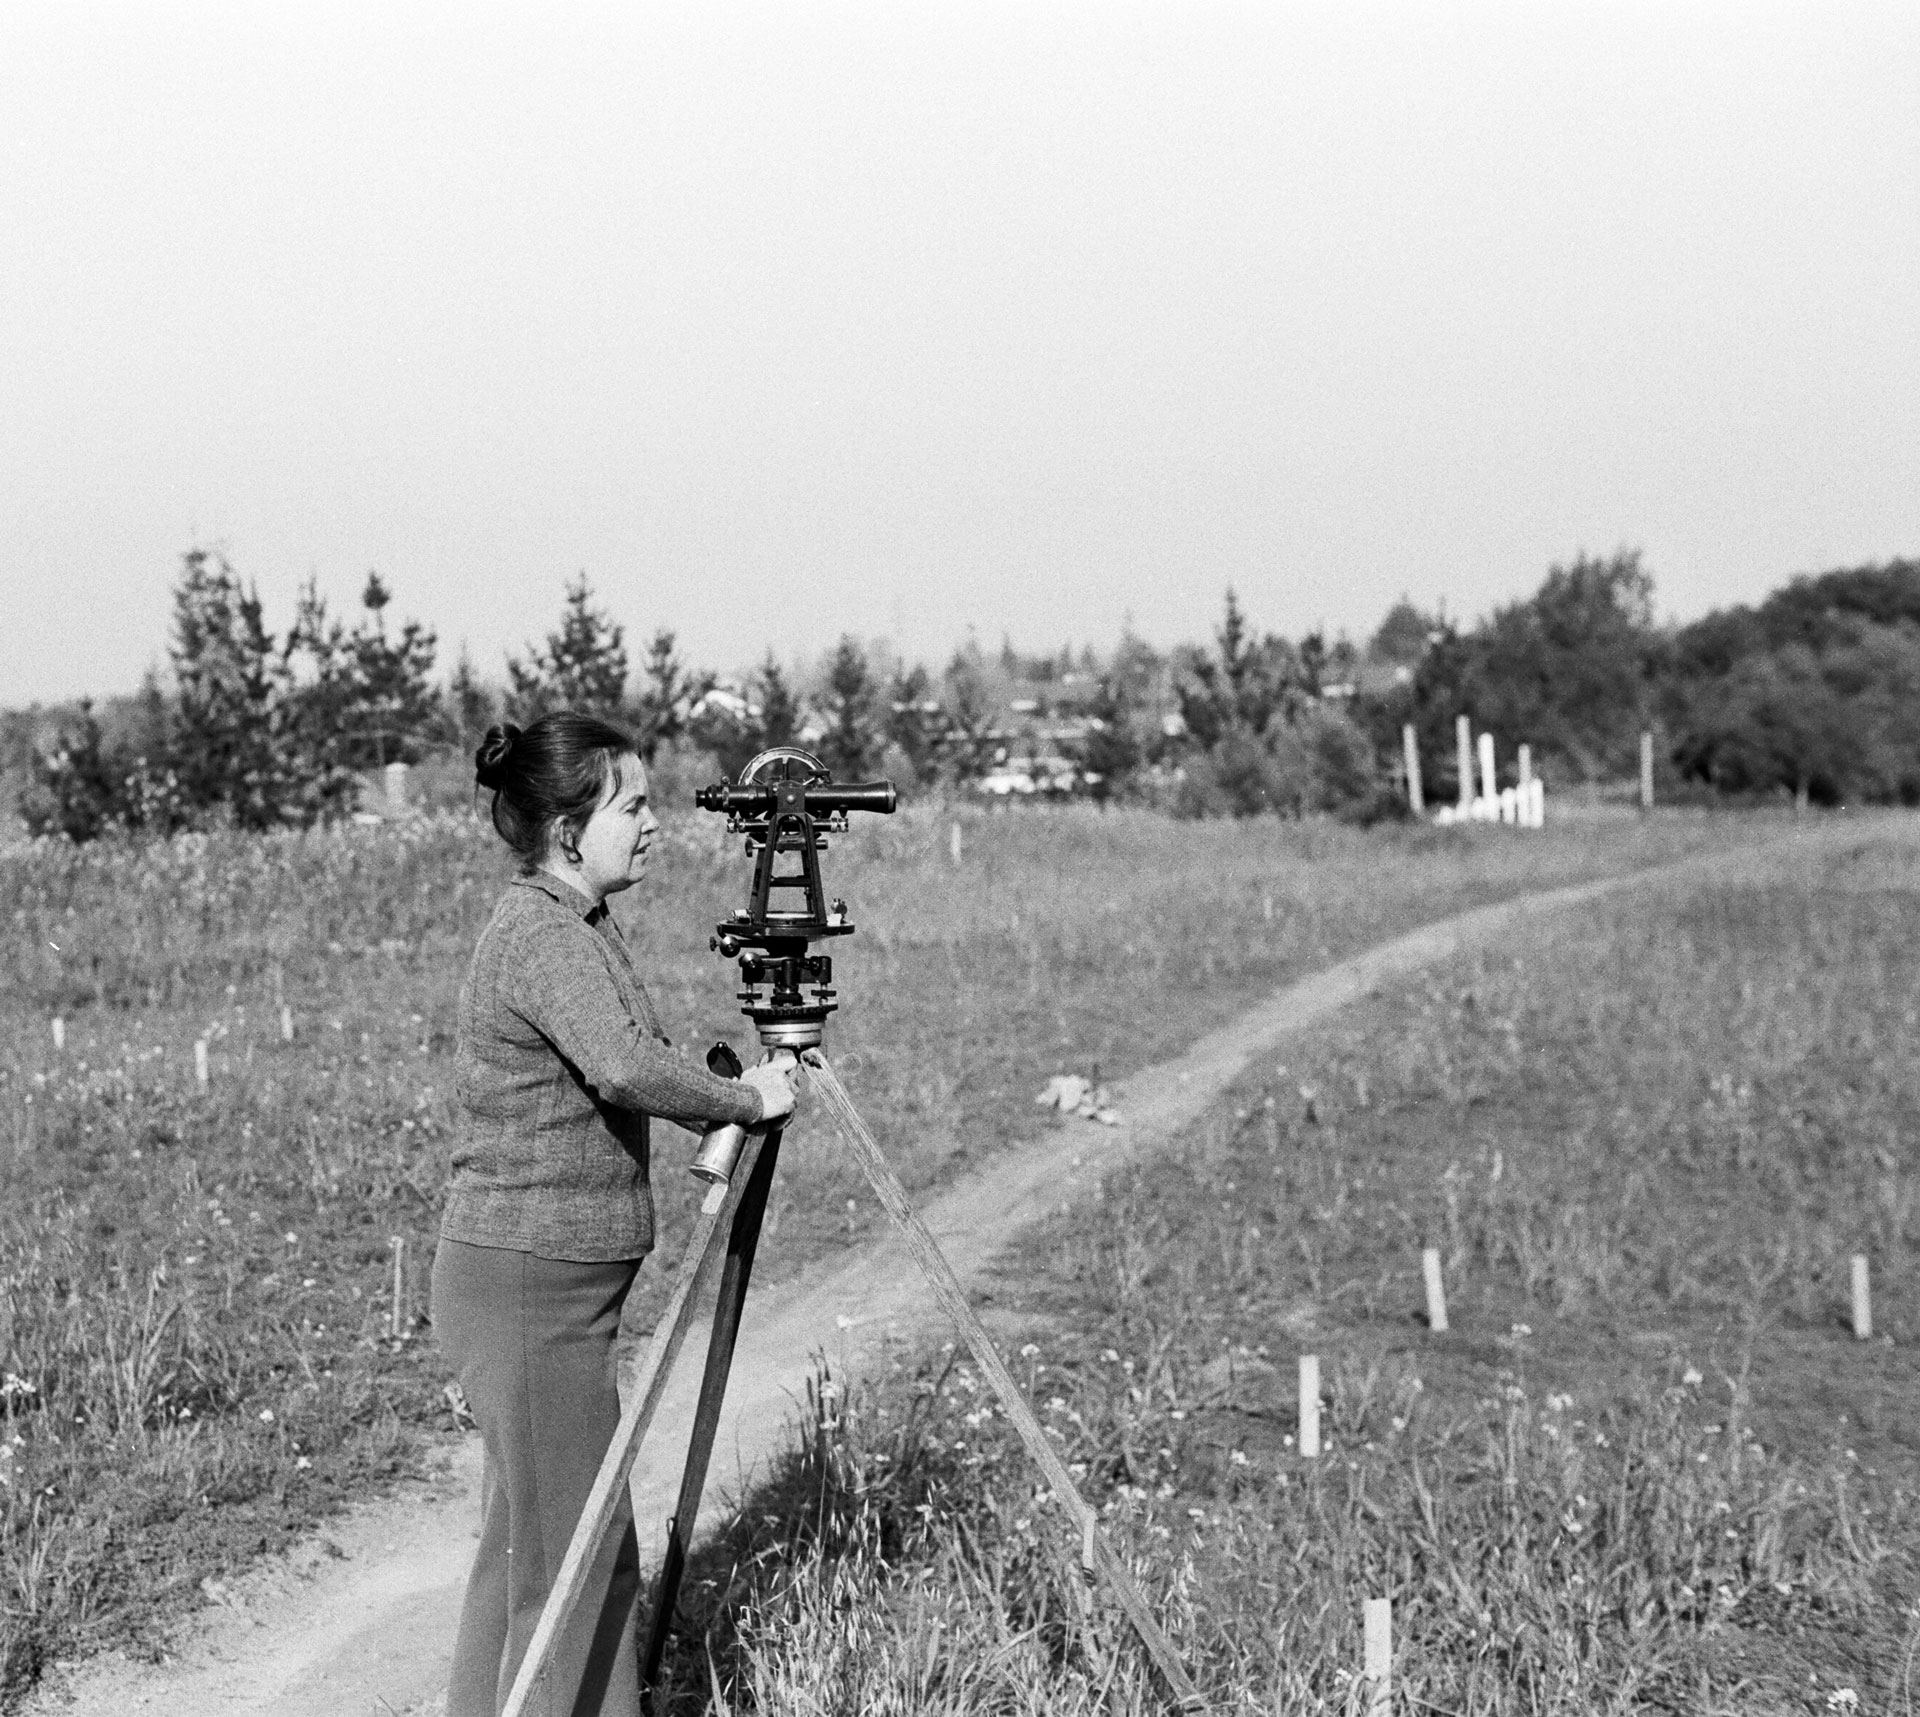 Image of Kathryn Kennedy plotting vineyard positions